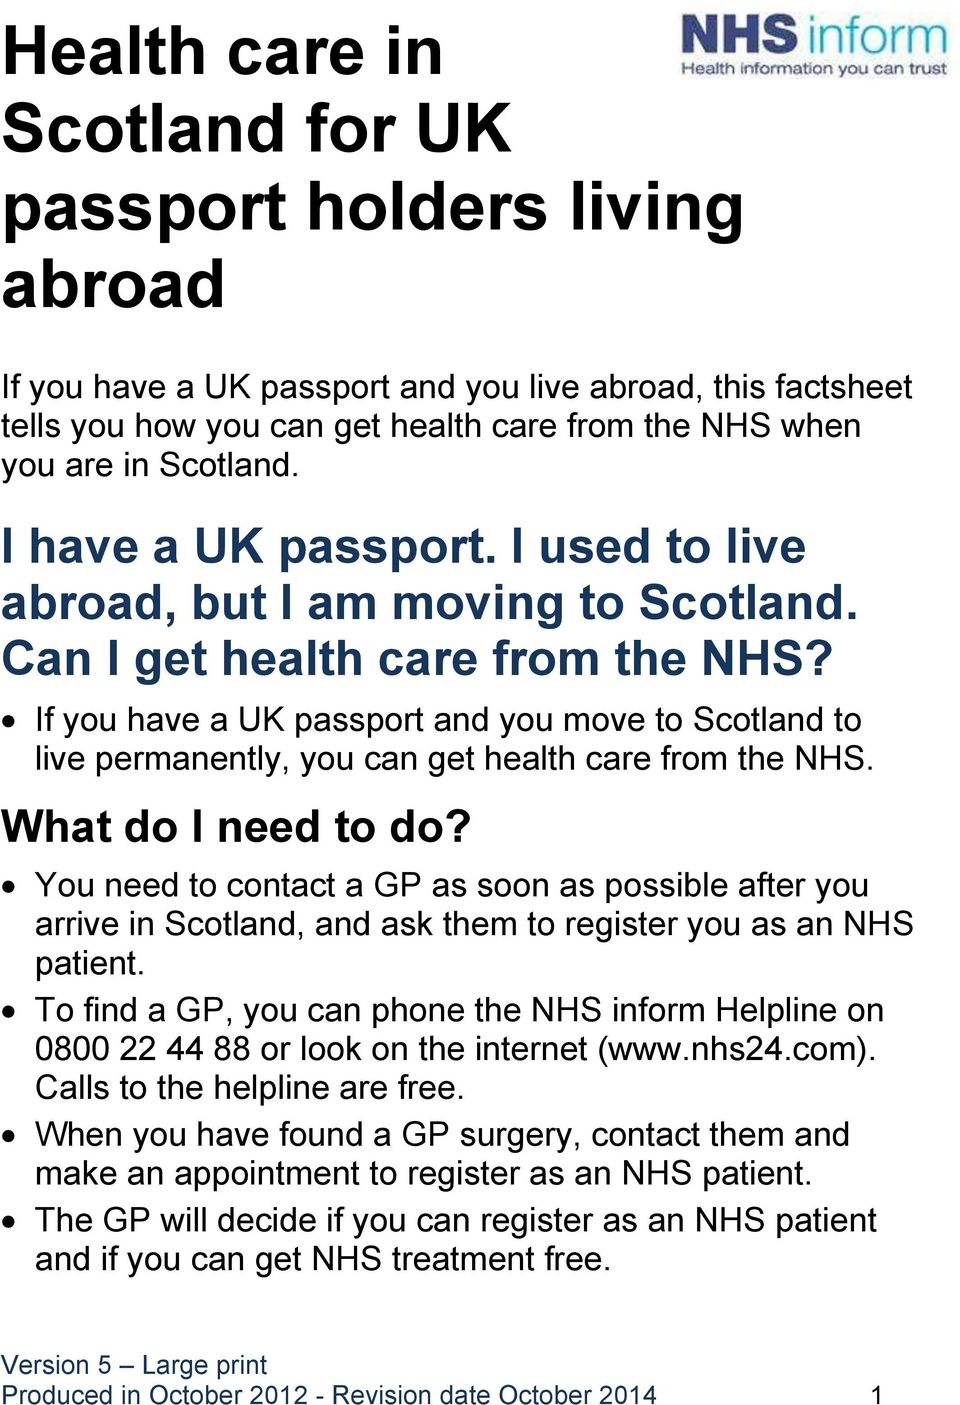 If you have a UK passport and you move to Scotland to live permanently, you can get health care from the NHS. What do I need to do?